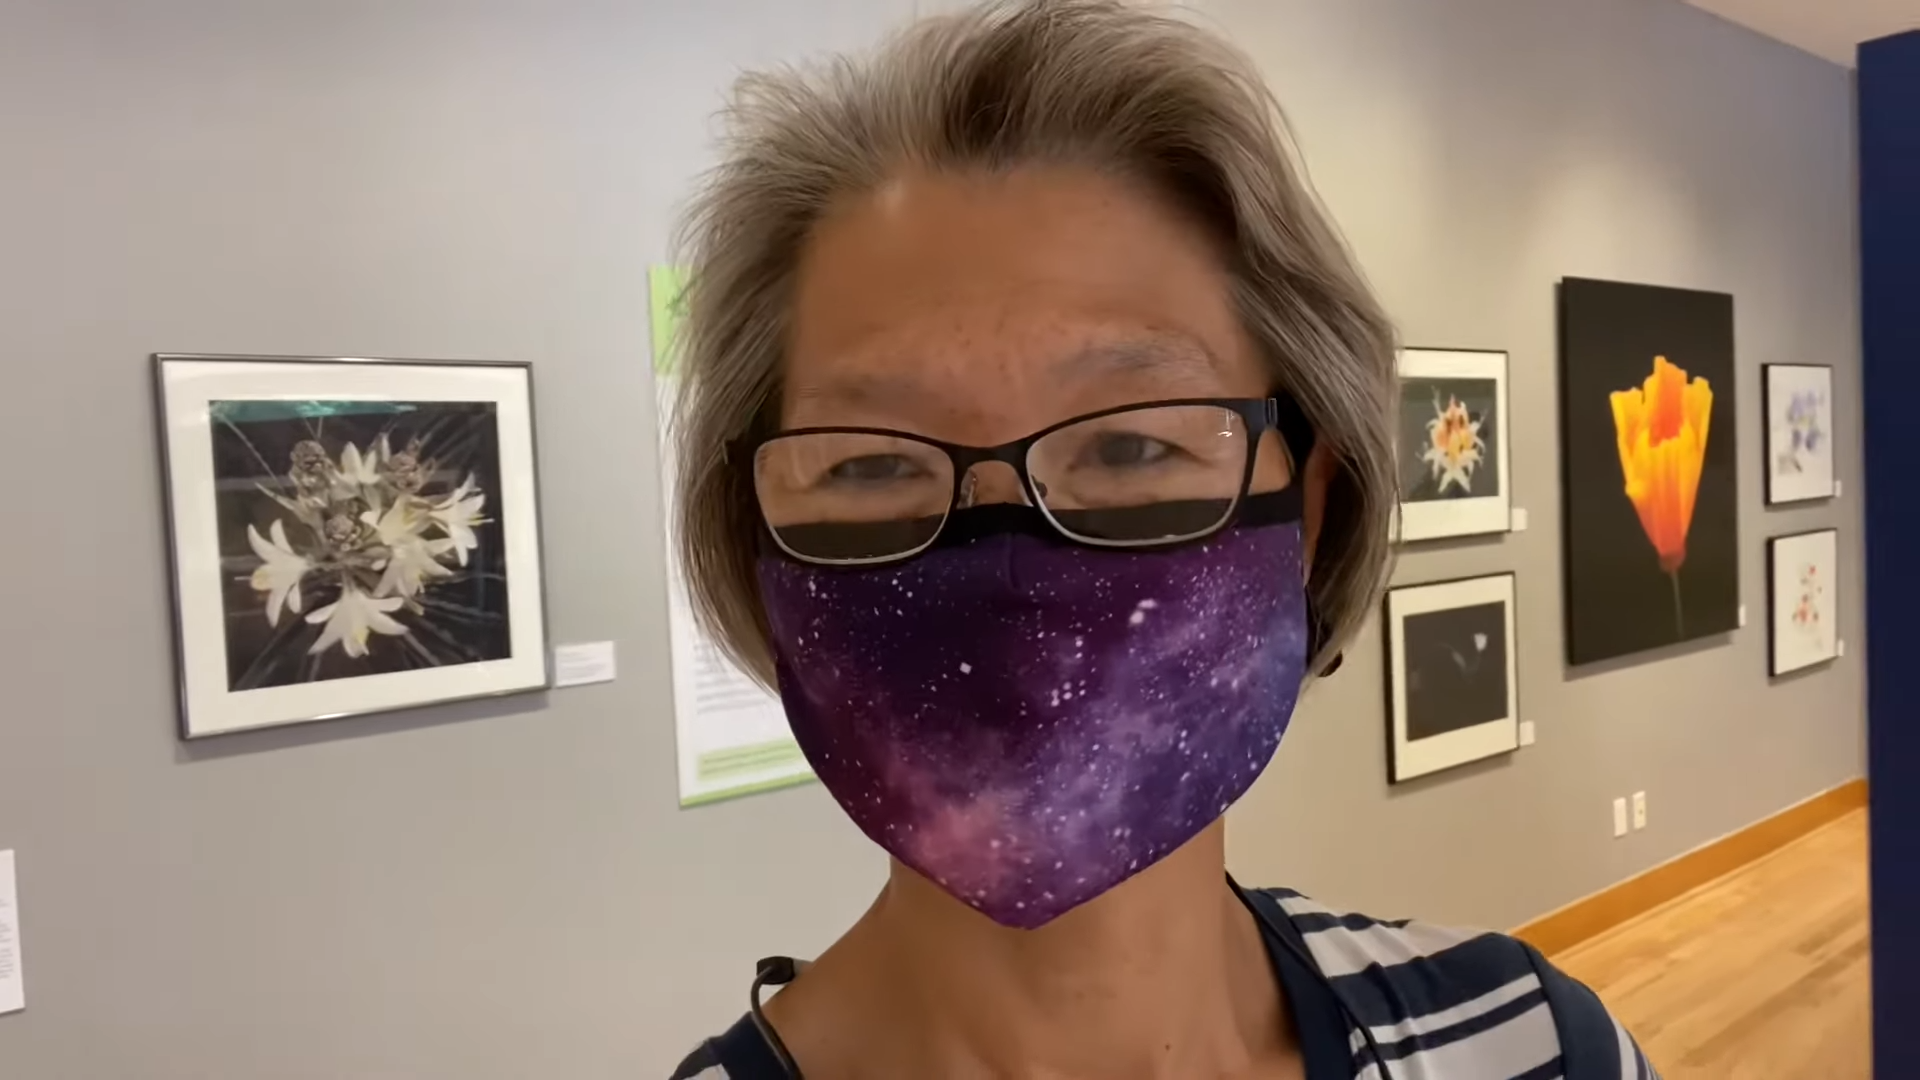 woman wearing glasses and a purple mask in front of artwork at a museum